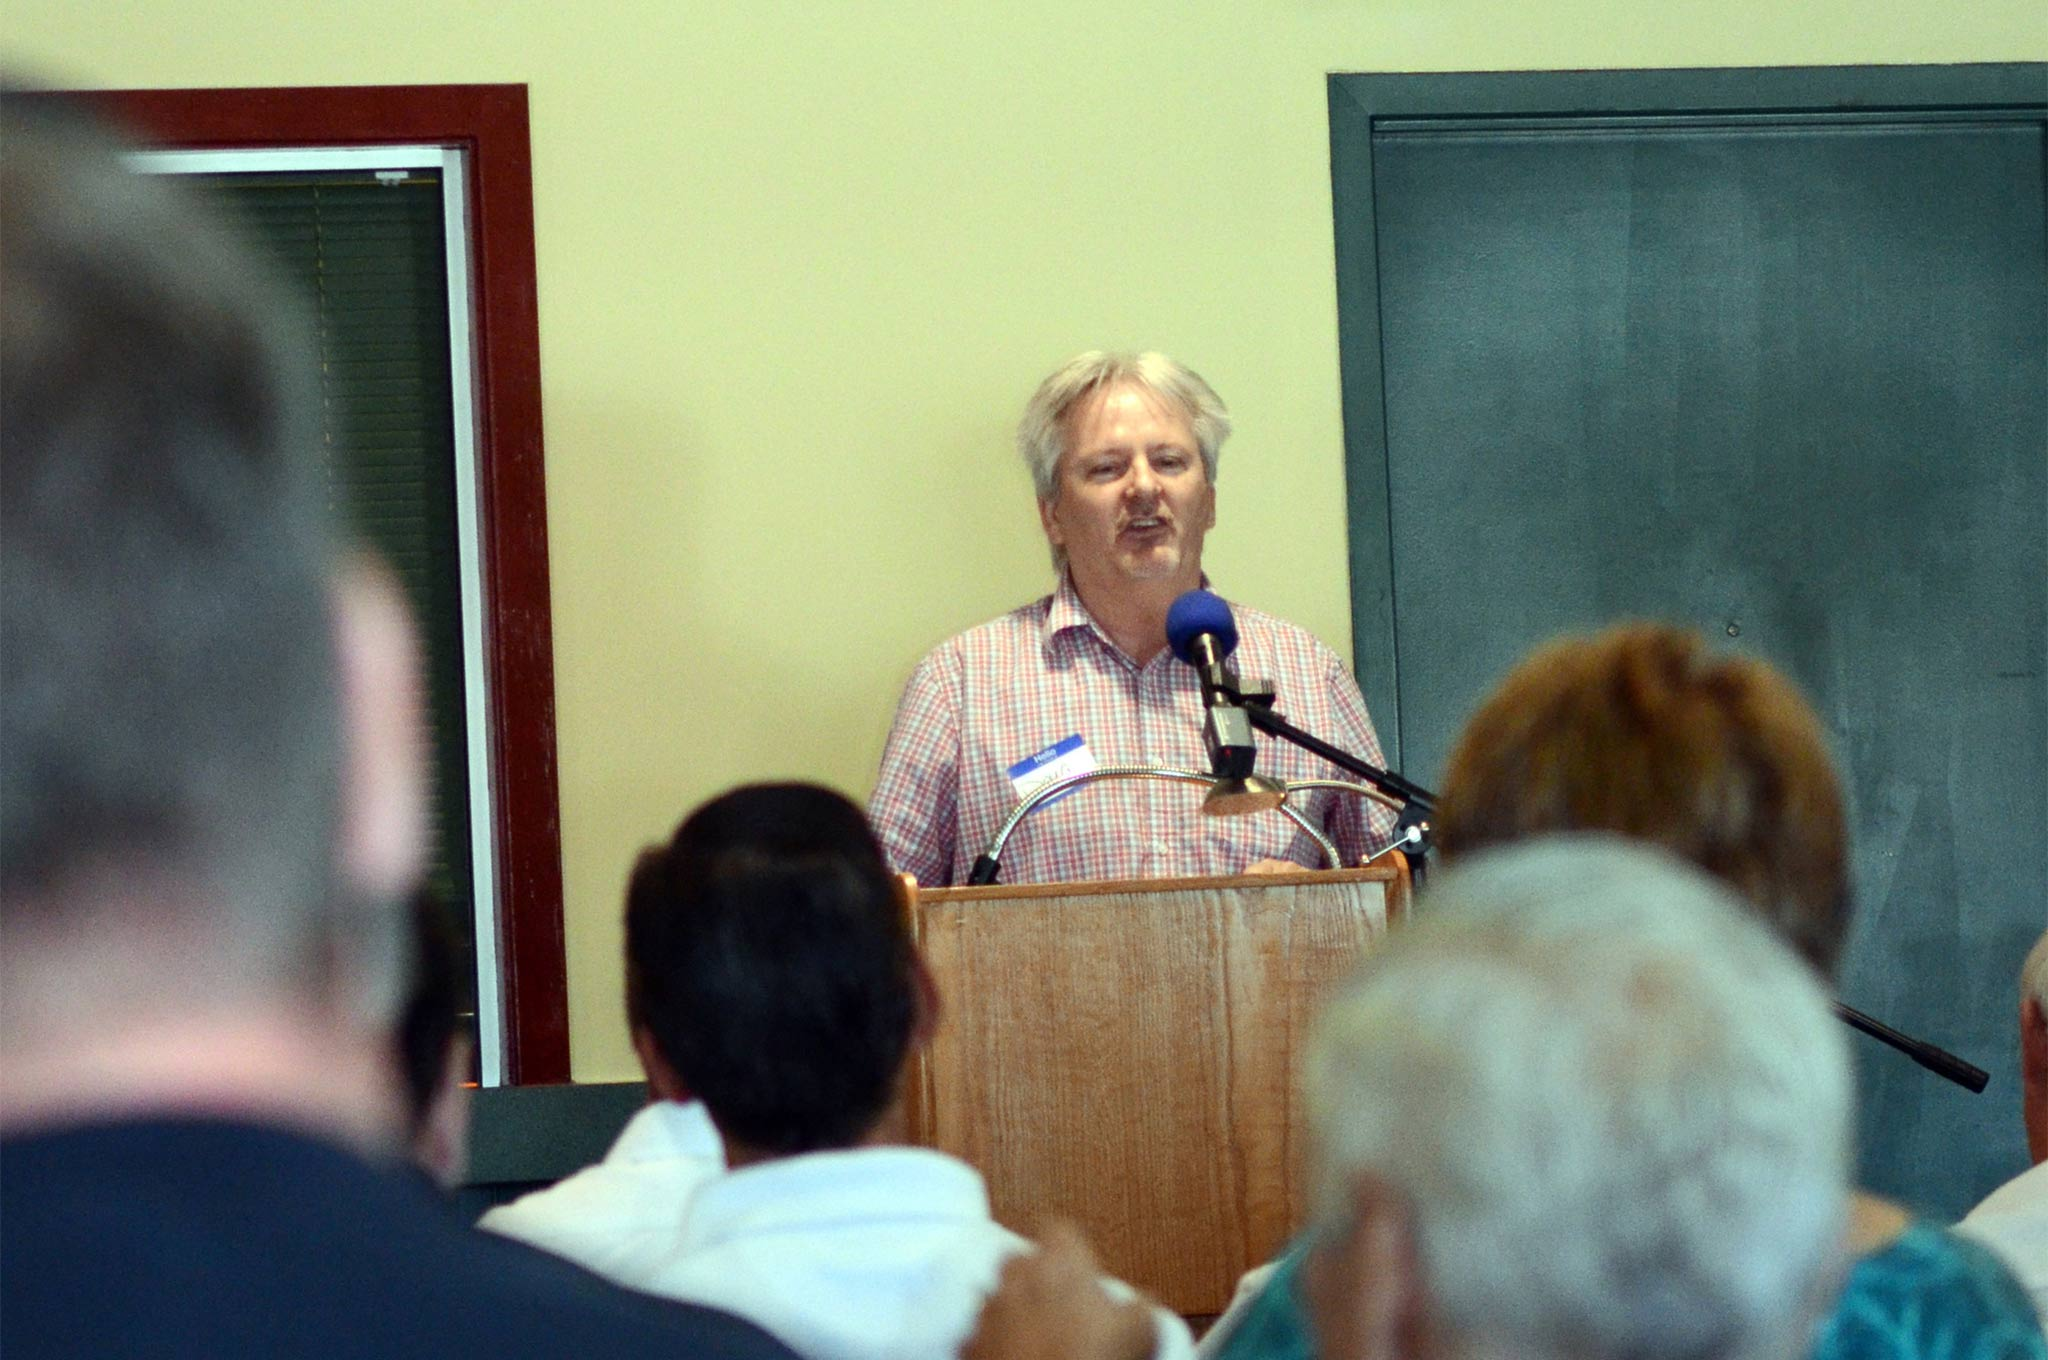 Author Doug Boyce, who wrote the book on Junior Stock, addresses the full house during Saturday's discussion.